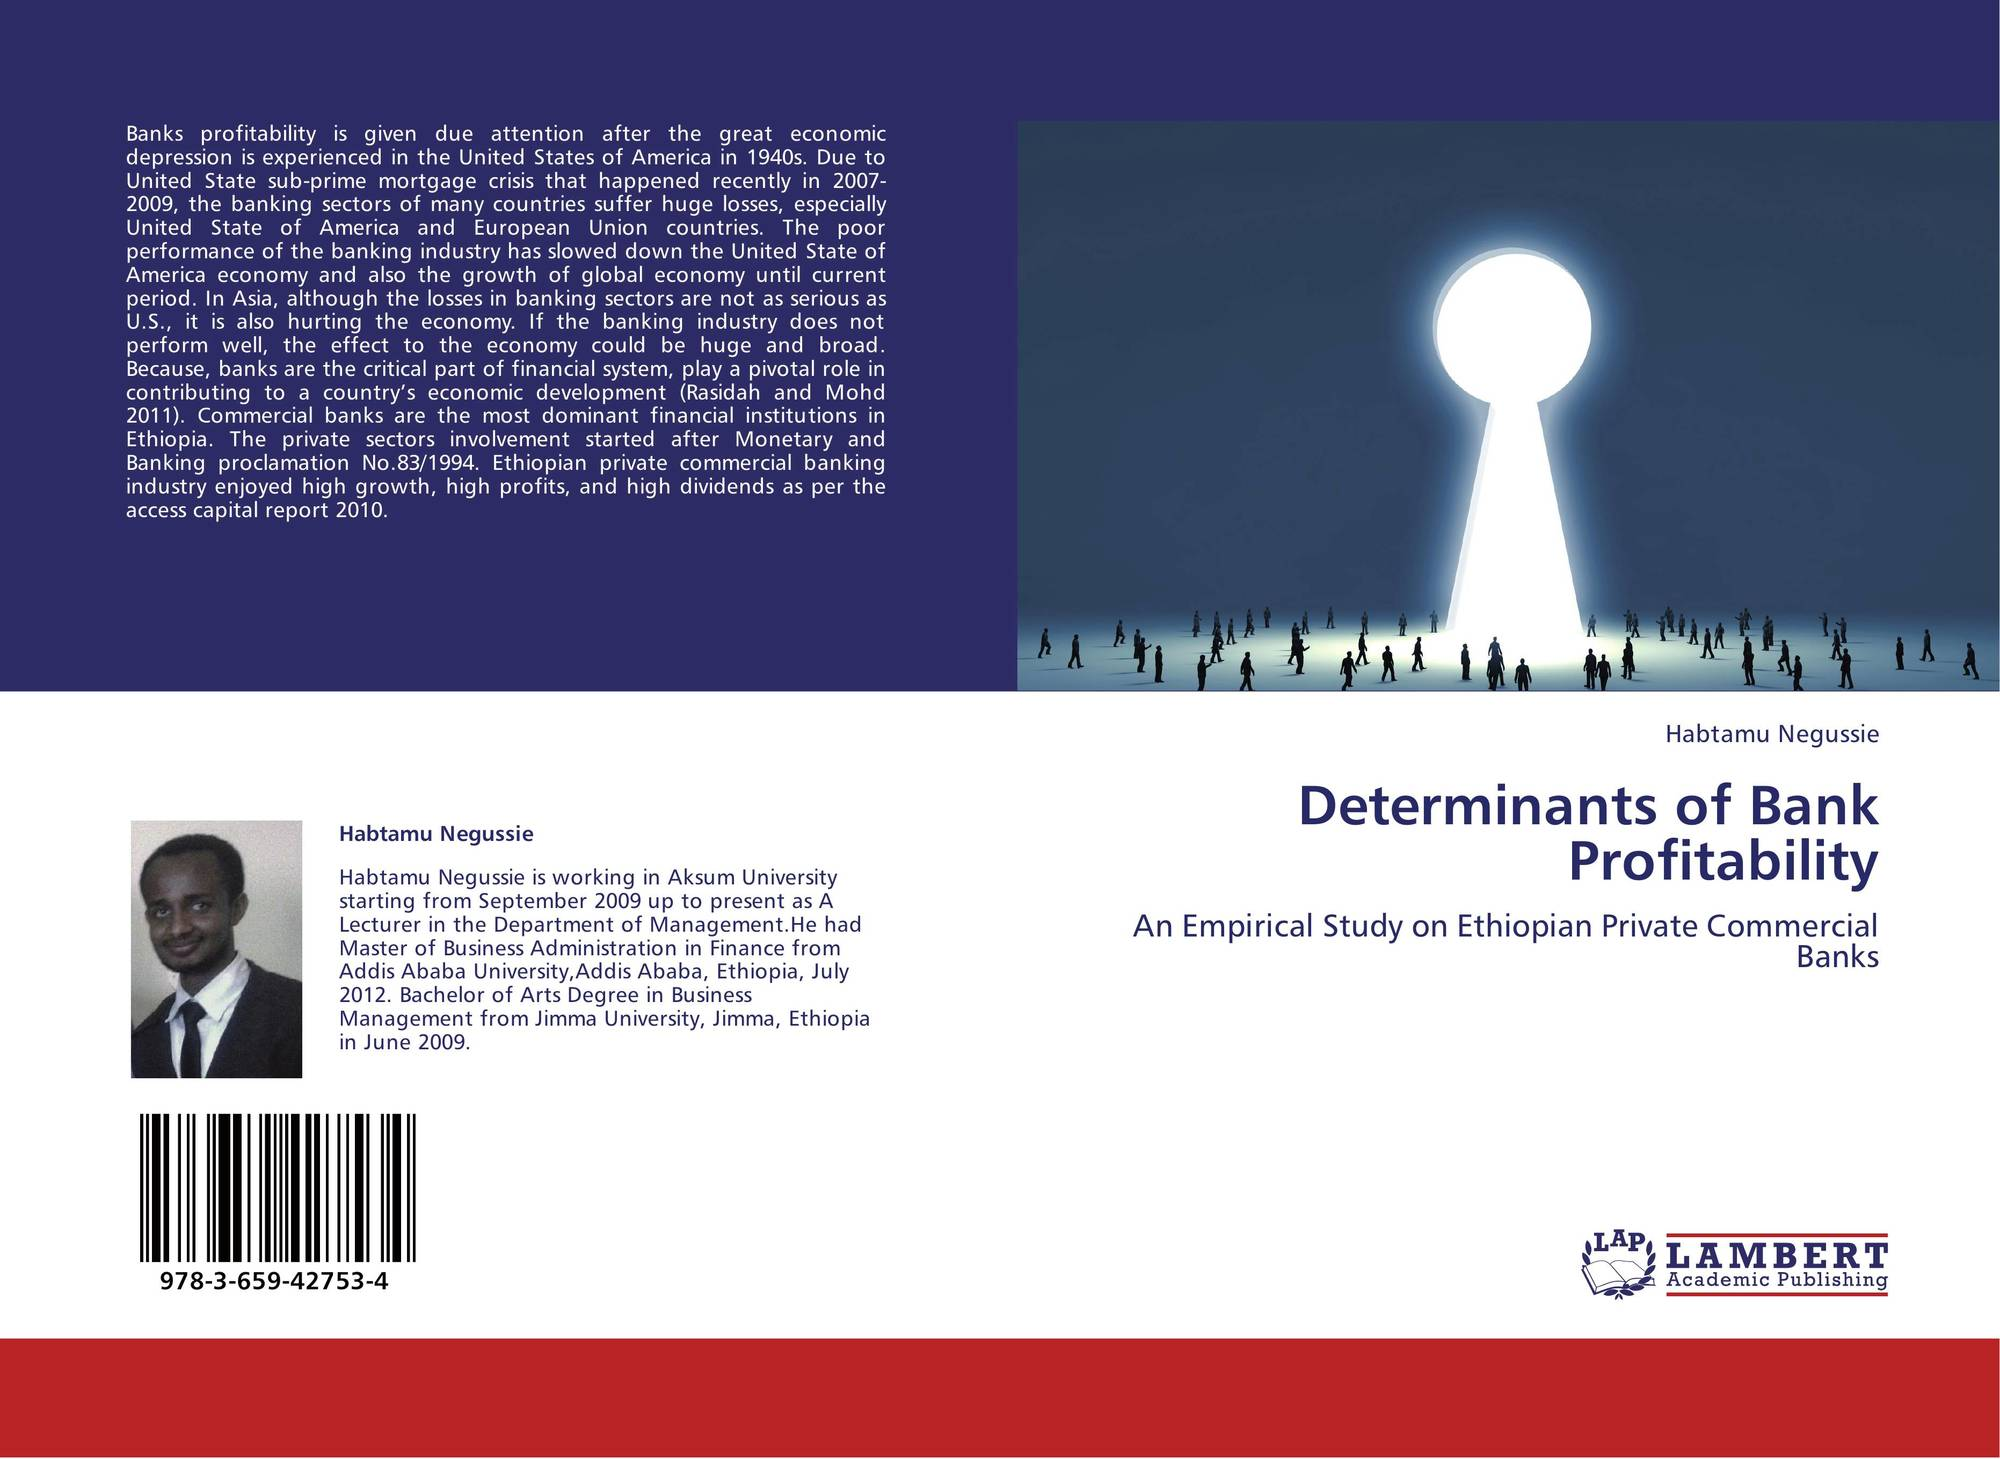 determinants of bank profitability in nigeria Bank profits are high in sub-saharan africa (ssa) compared to other regions this paper uses a sample of 389 banks in 41 ssa countries to study the determinants of bank.